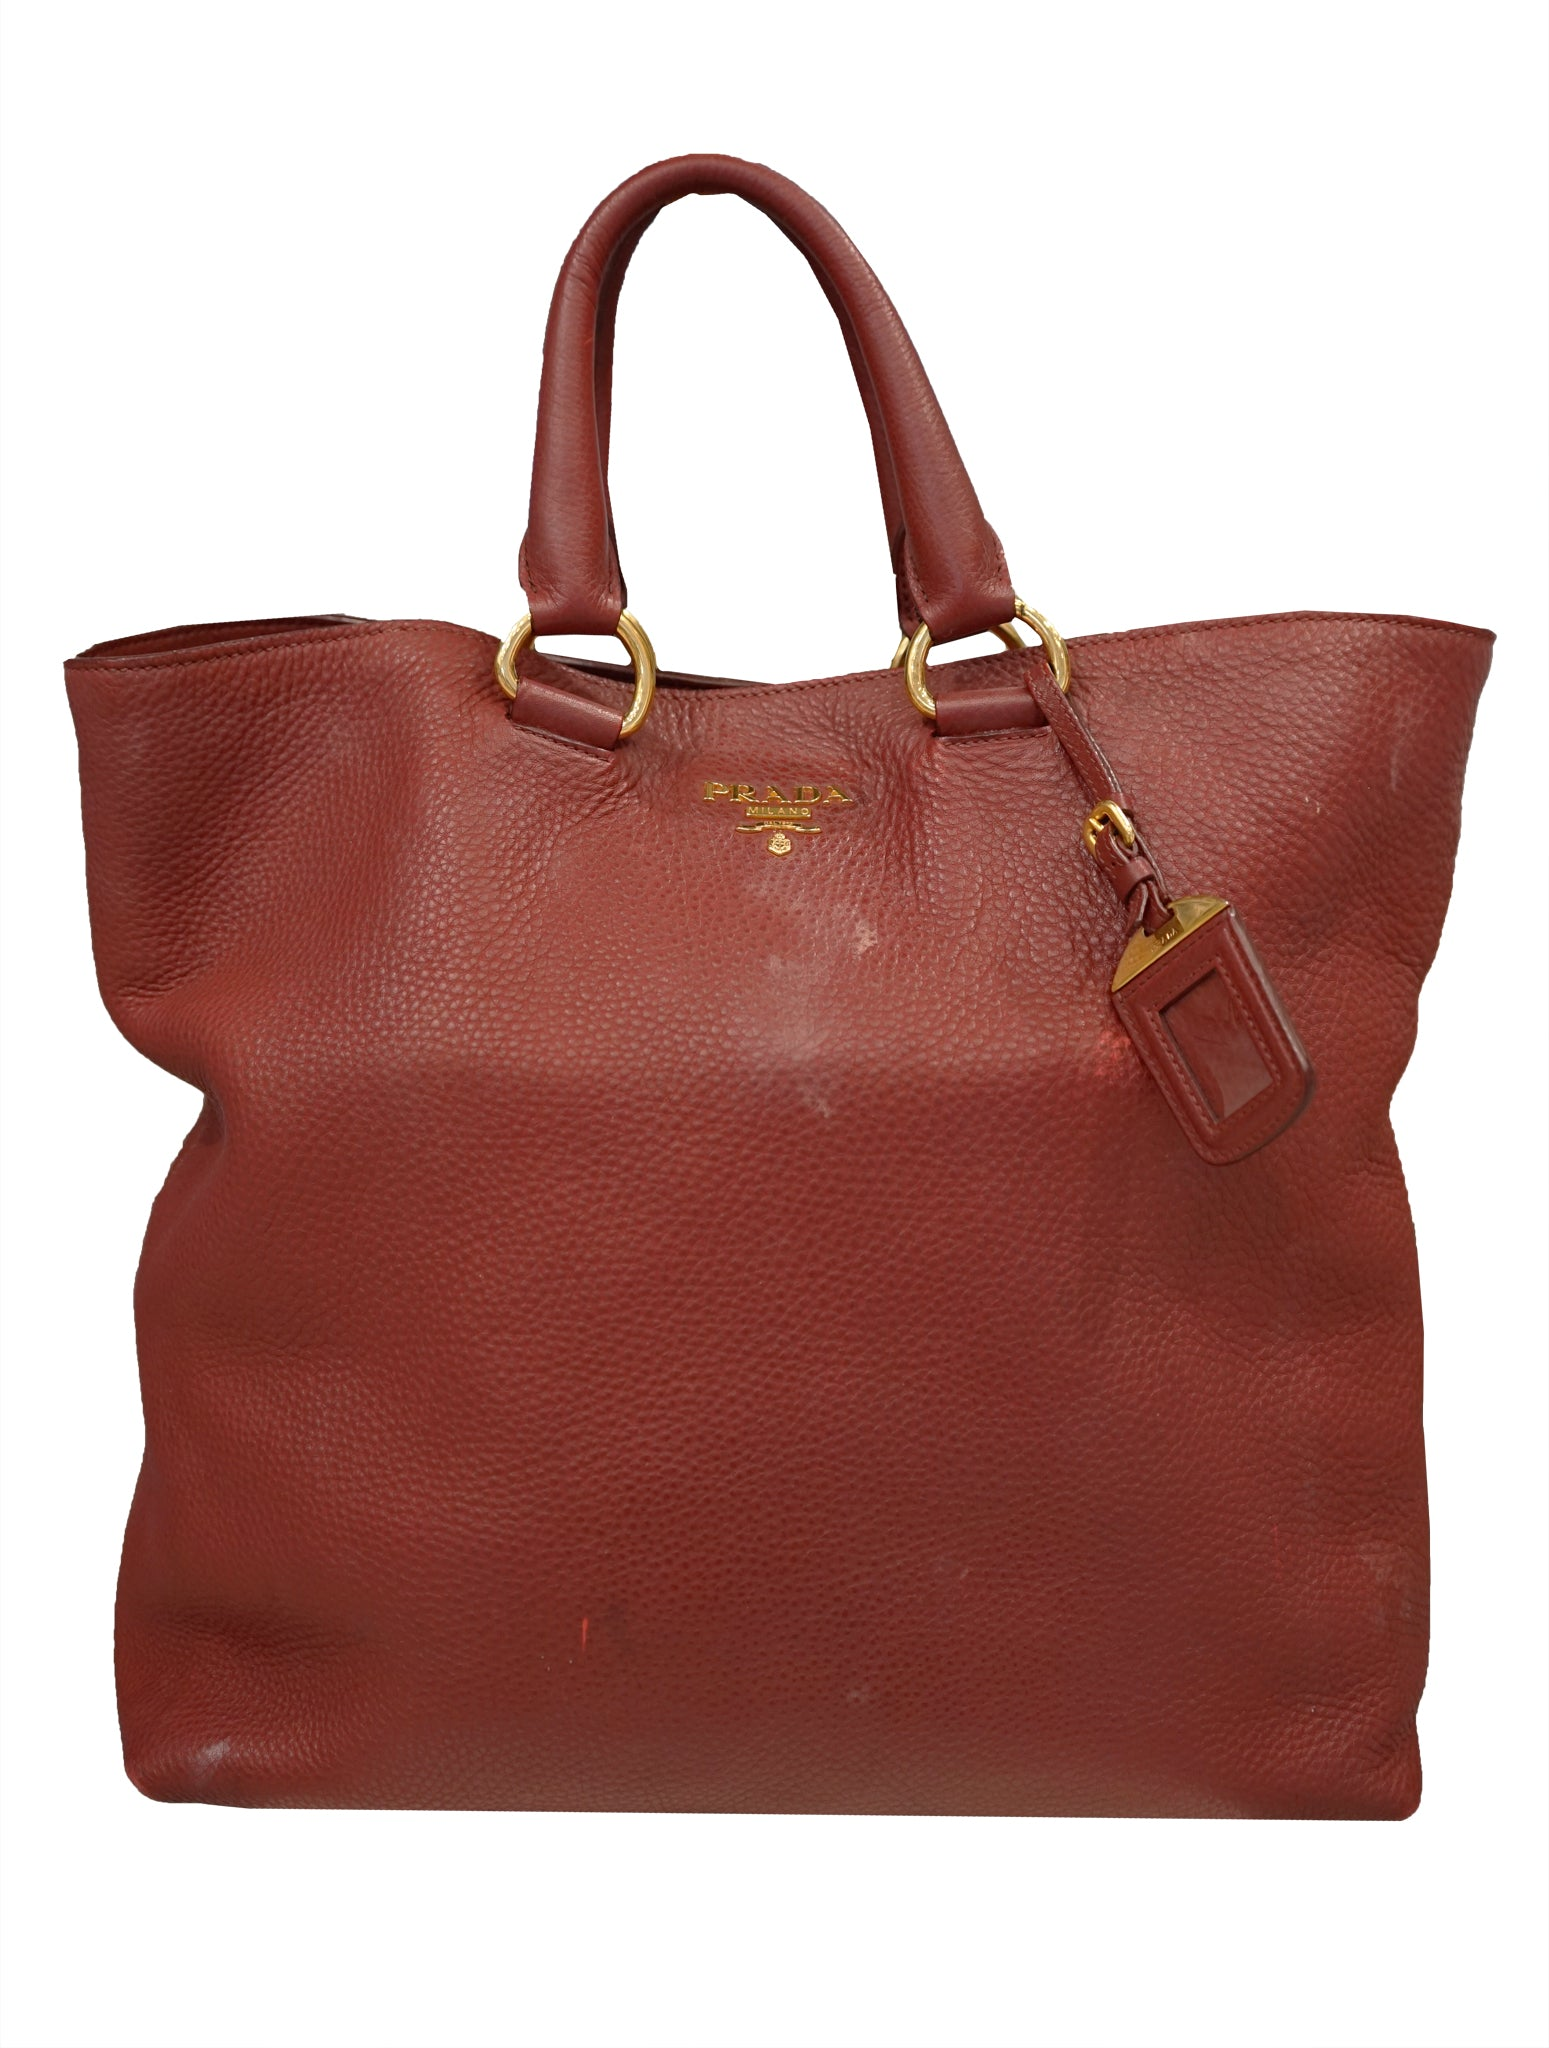 5784120c255d ... VITELLO DAINO LEATHER SHOPPER TOTE. Prada Bag, Prada Milano, Hobo Bag,  Ladies Luxury Bag